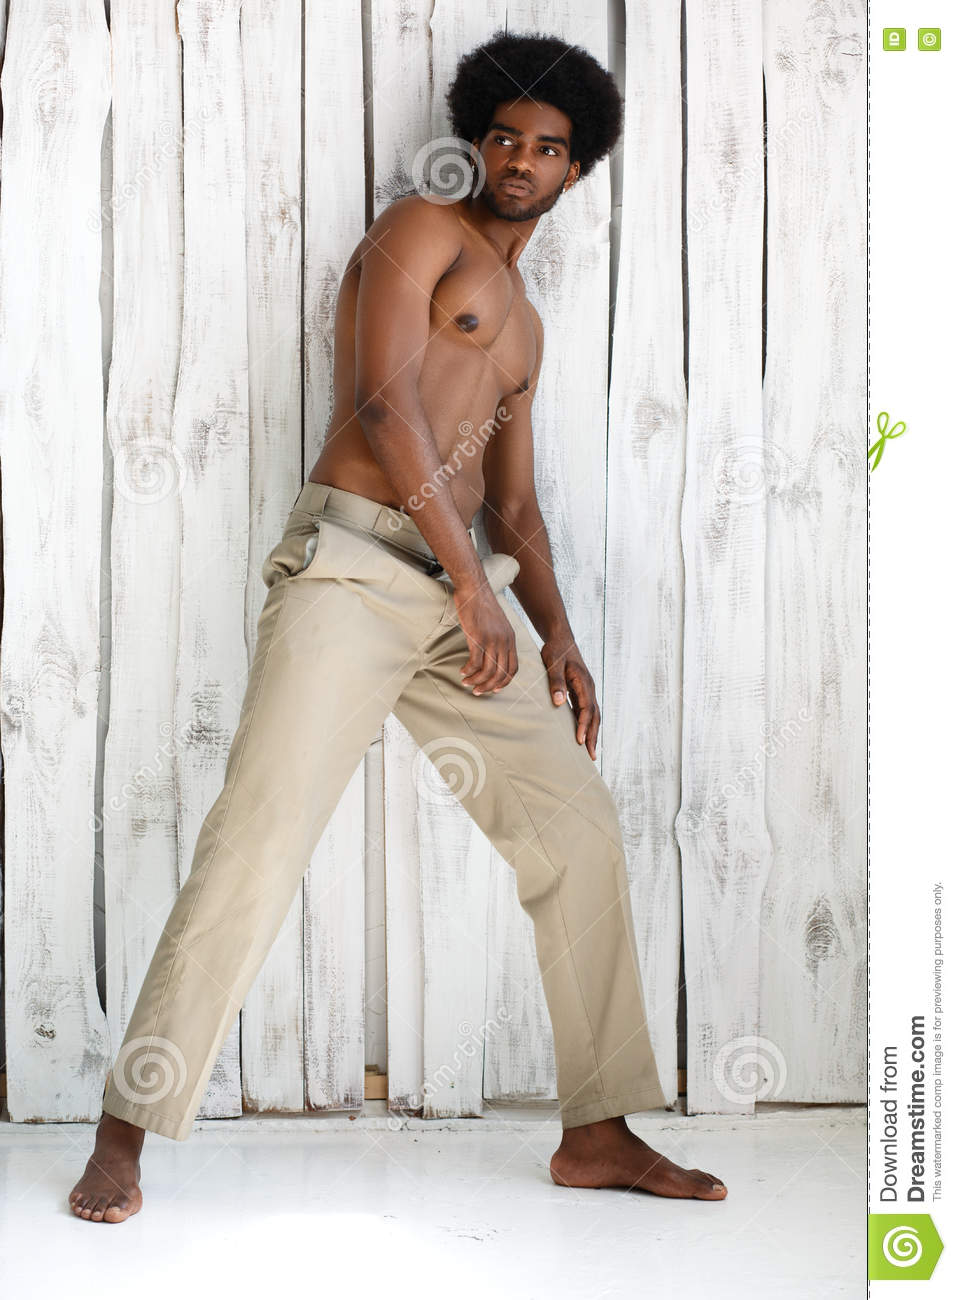 Download Fashion Photo Of African American Athletic Man With Sport Wet Body Is Posing Near The Texture Wall Background Stock Photo - Image of macho, attractive: 75559068